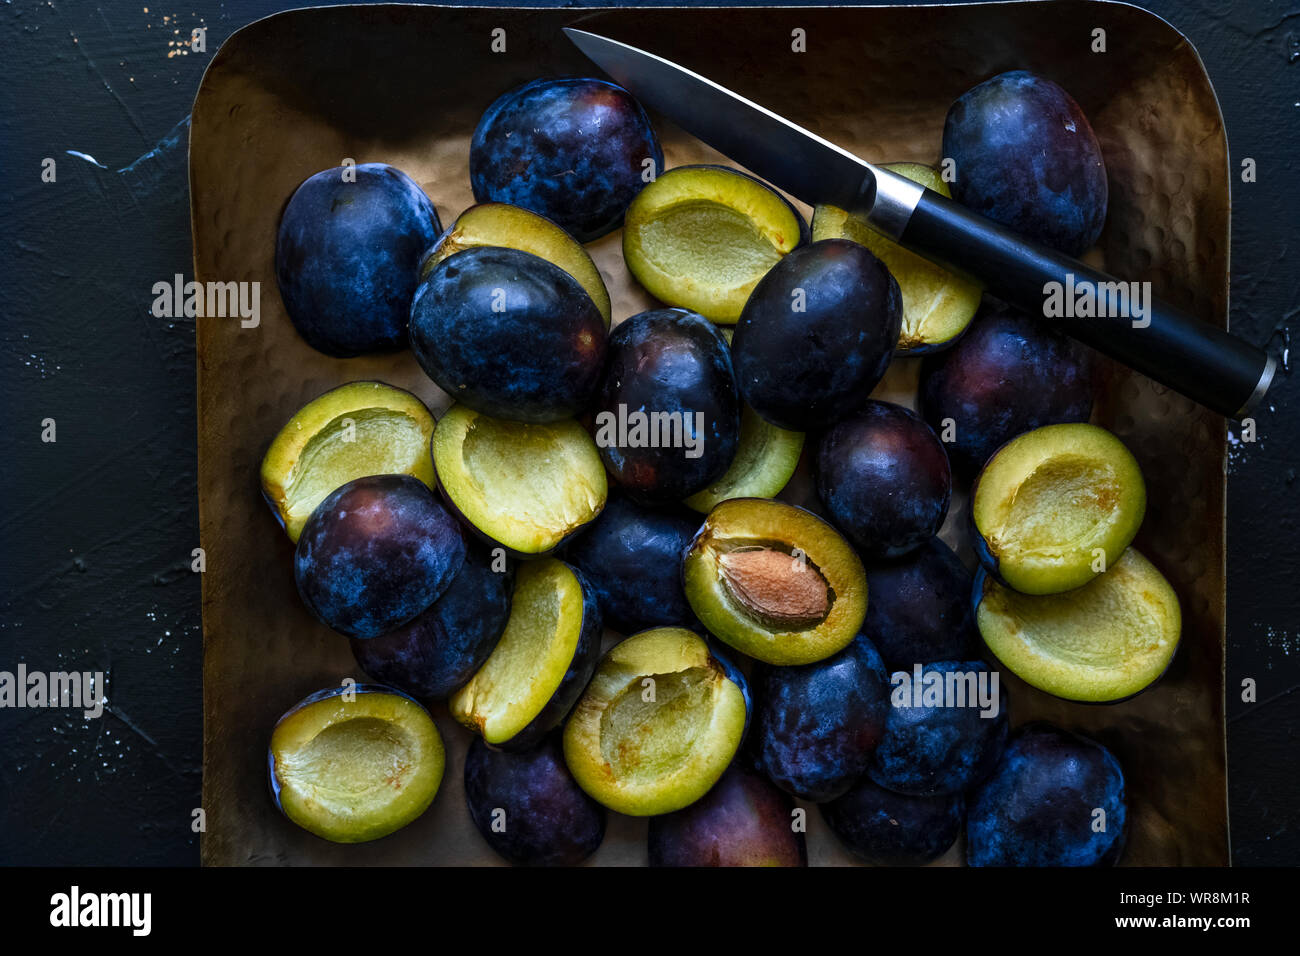 Top down view of sliced fresh blue plums and knife on a metal tray, closeup view, horizontal orientation Stock Photo